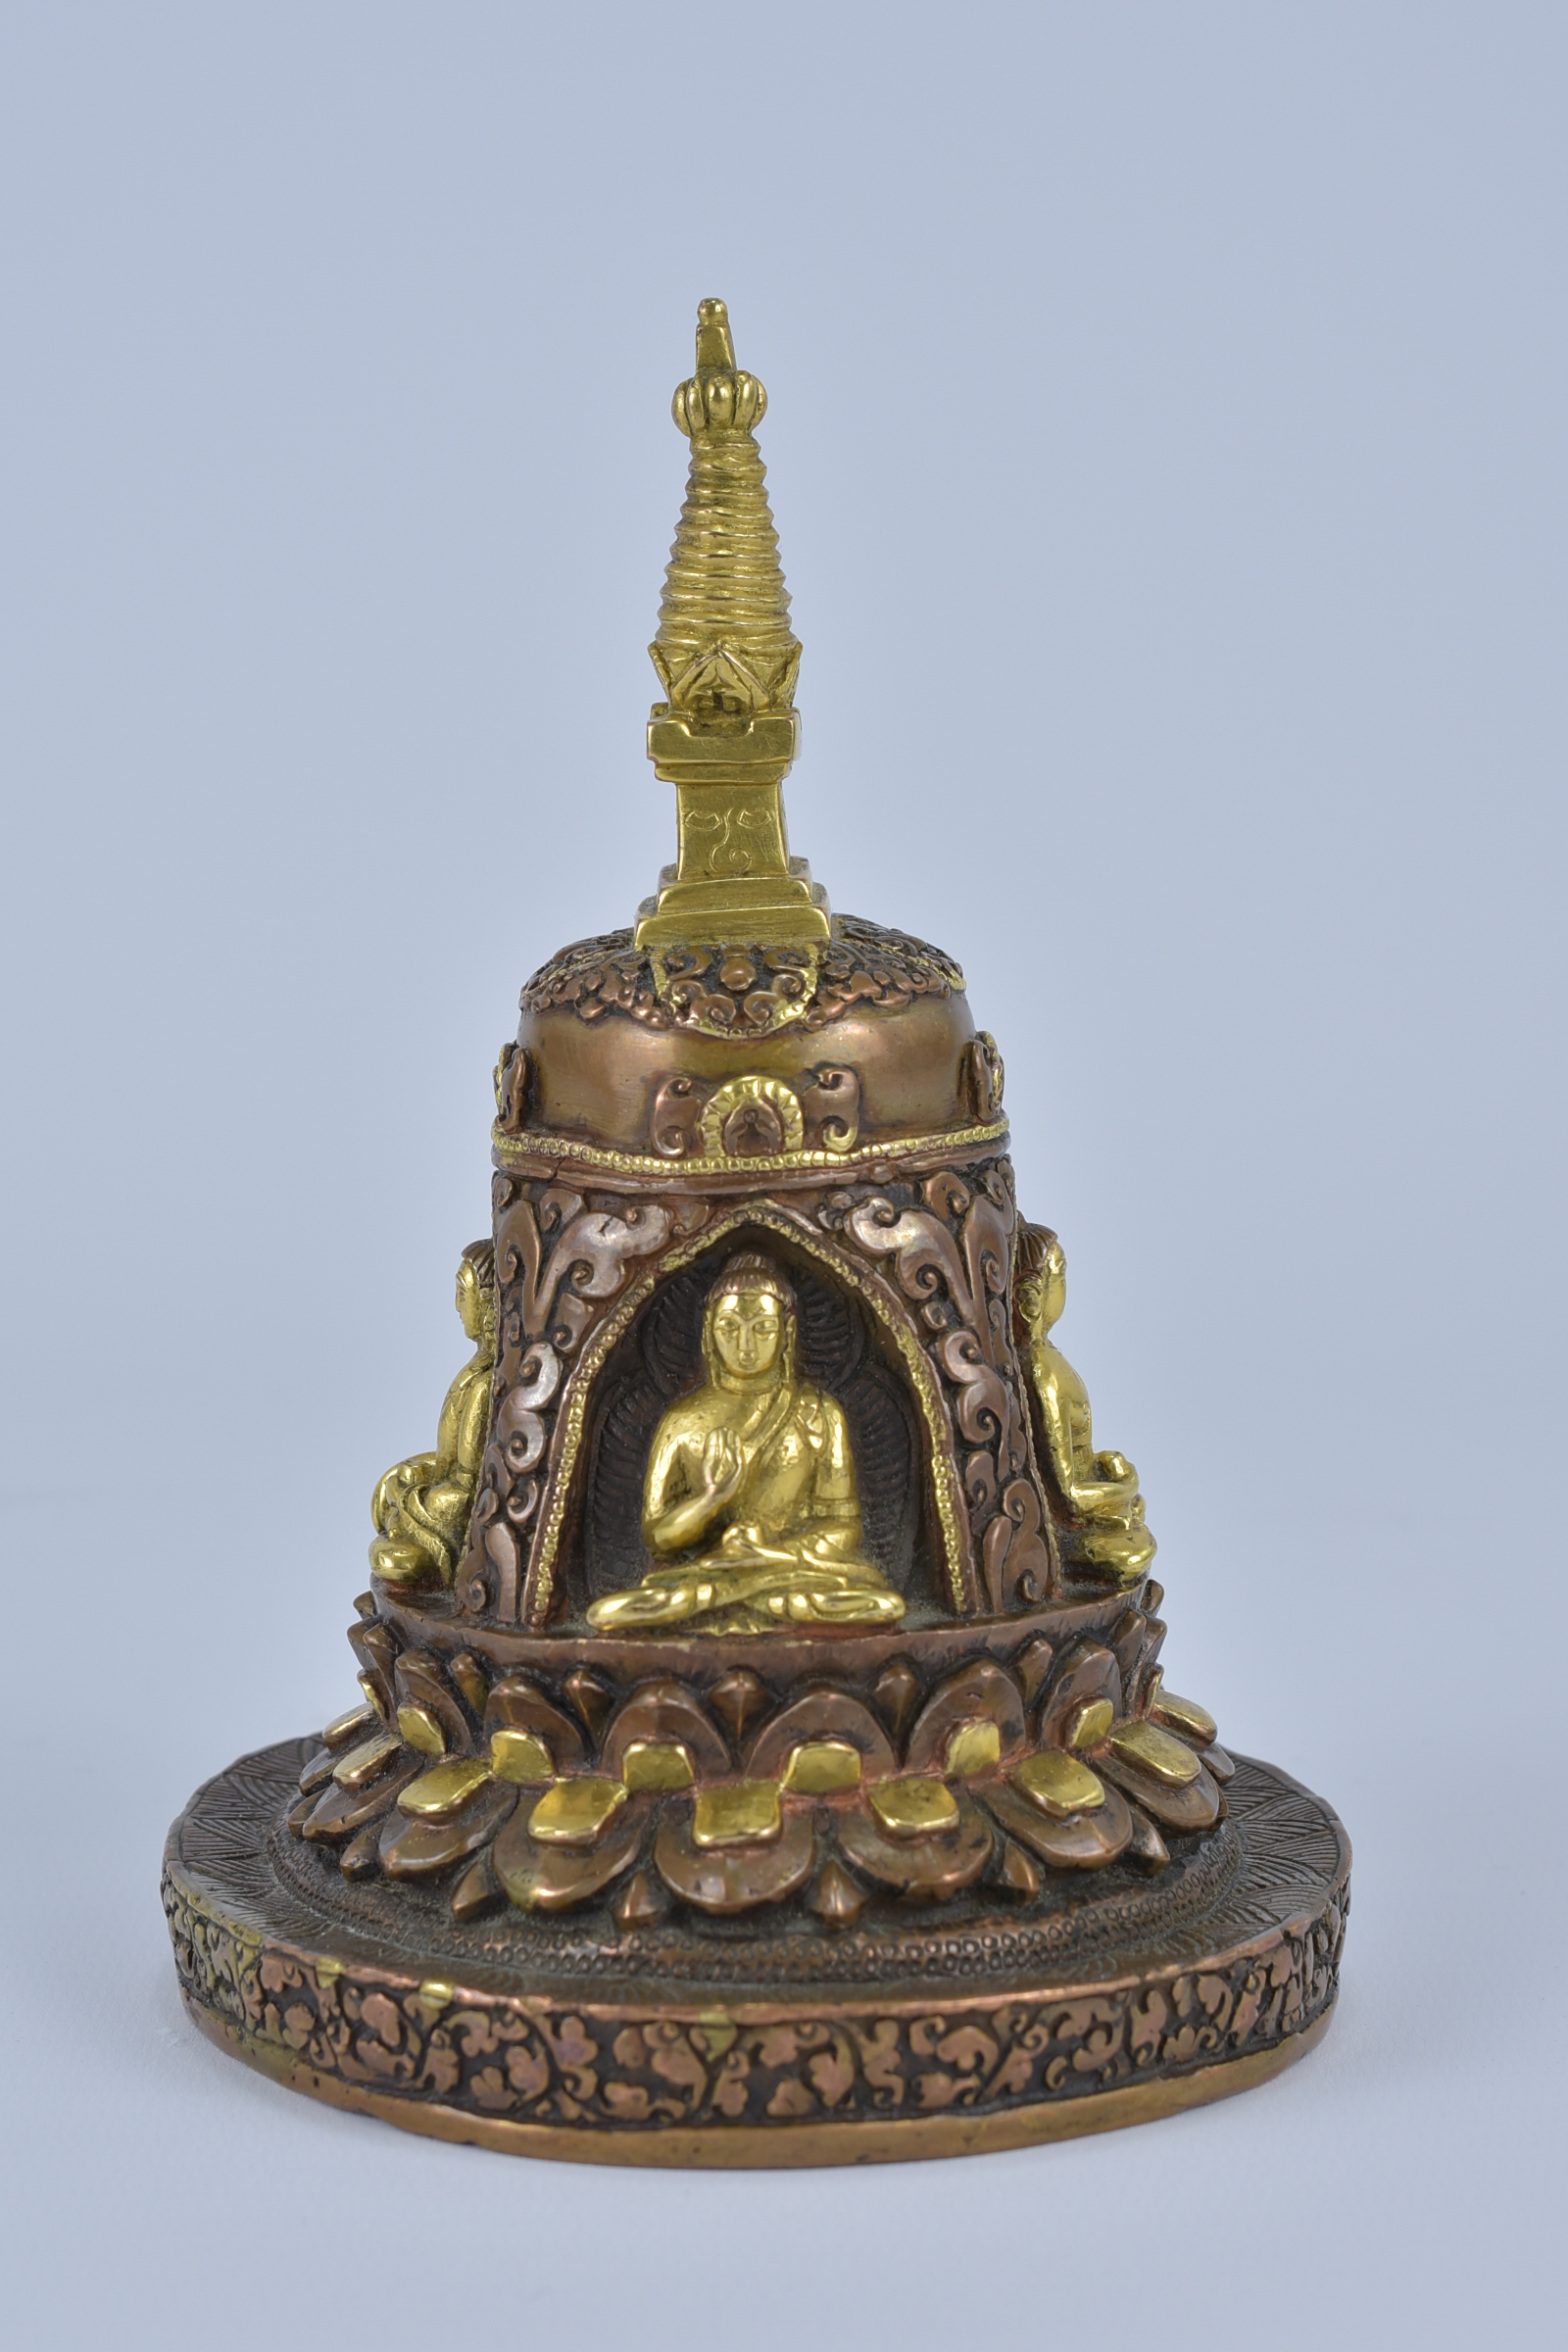 Lot 21 - A Tibetan bronze pagoda statue with four seated Buddhas. 16cm height